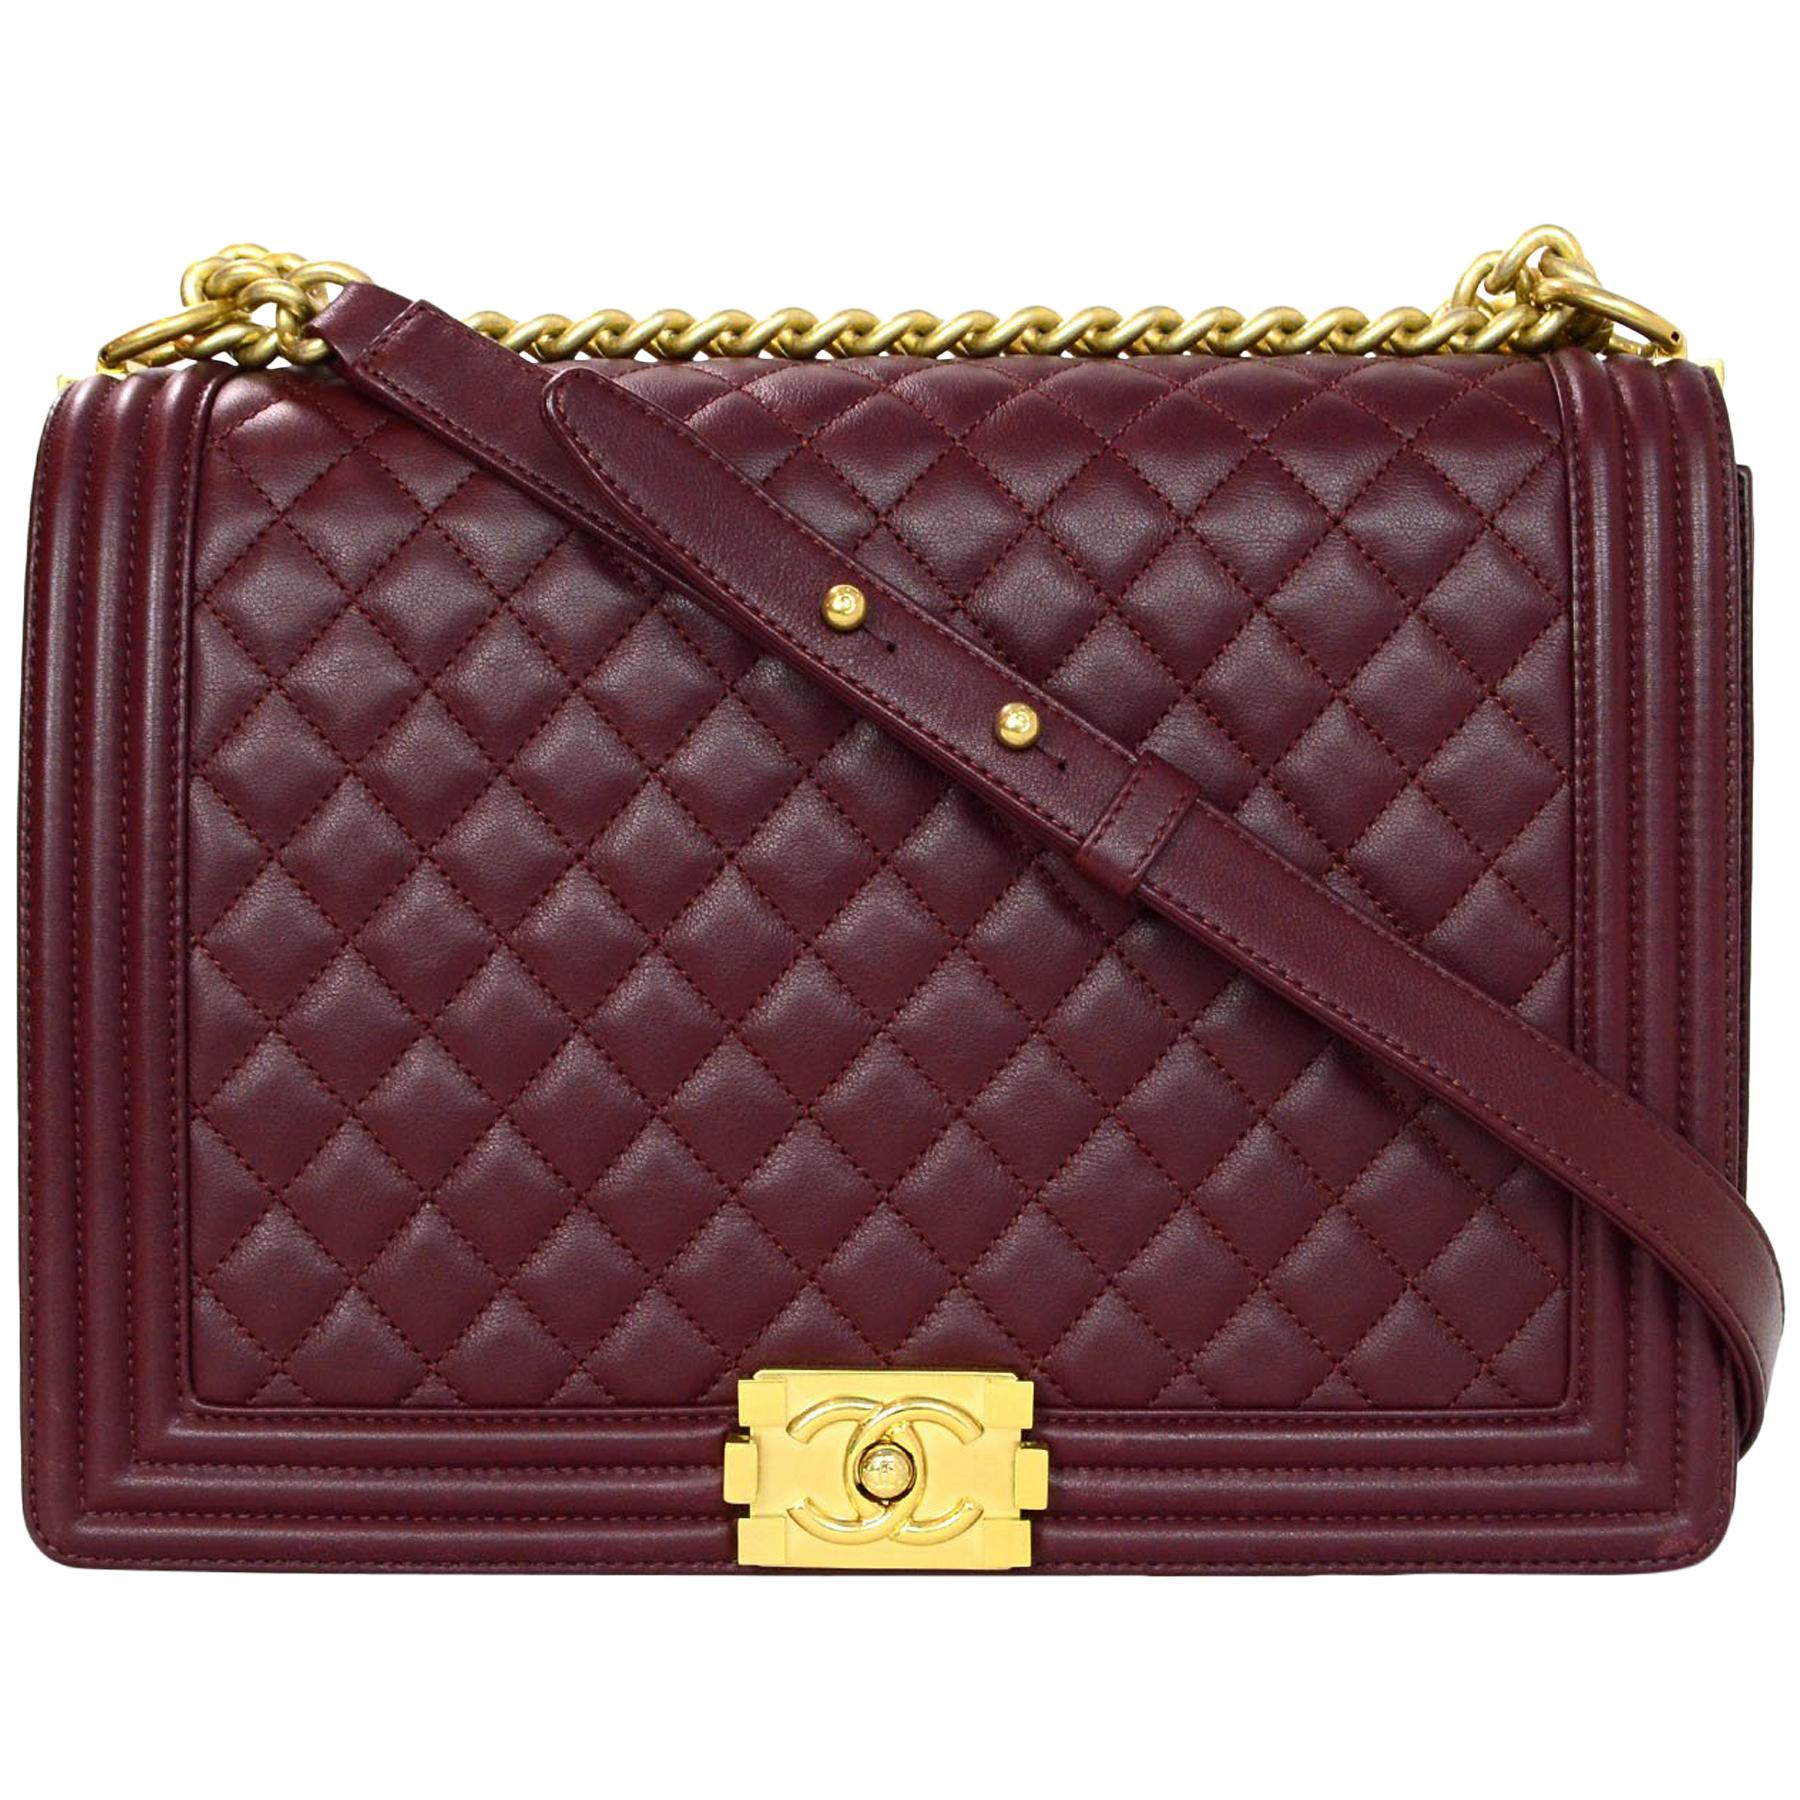 052b3a6bd9a7c0 Chanel Burgundy Quilted Lambskin Leather Large Boy Crossbody Flap